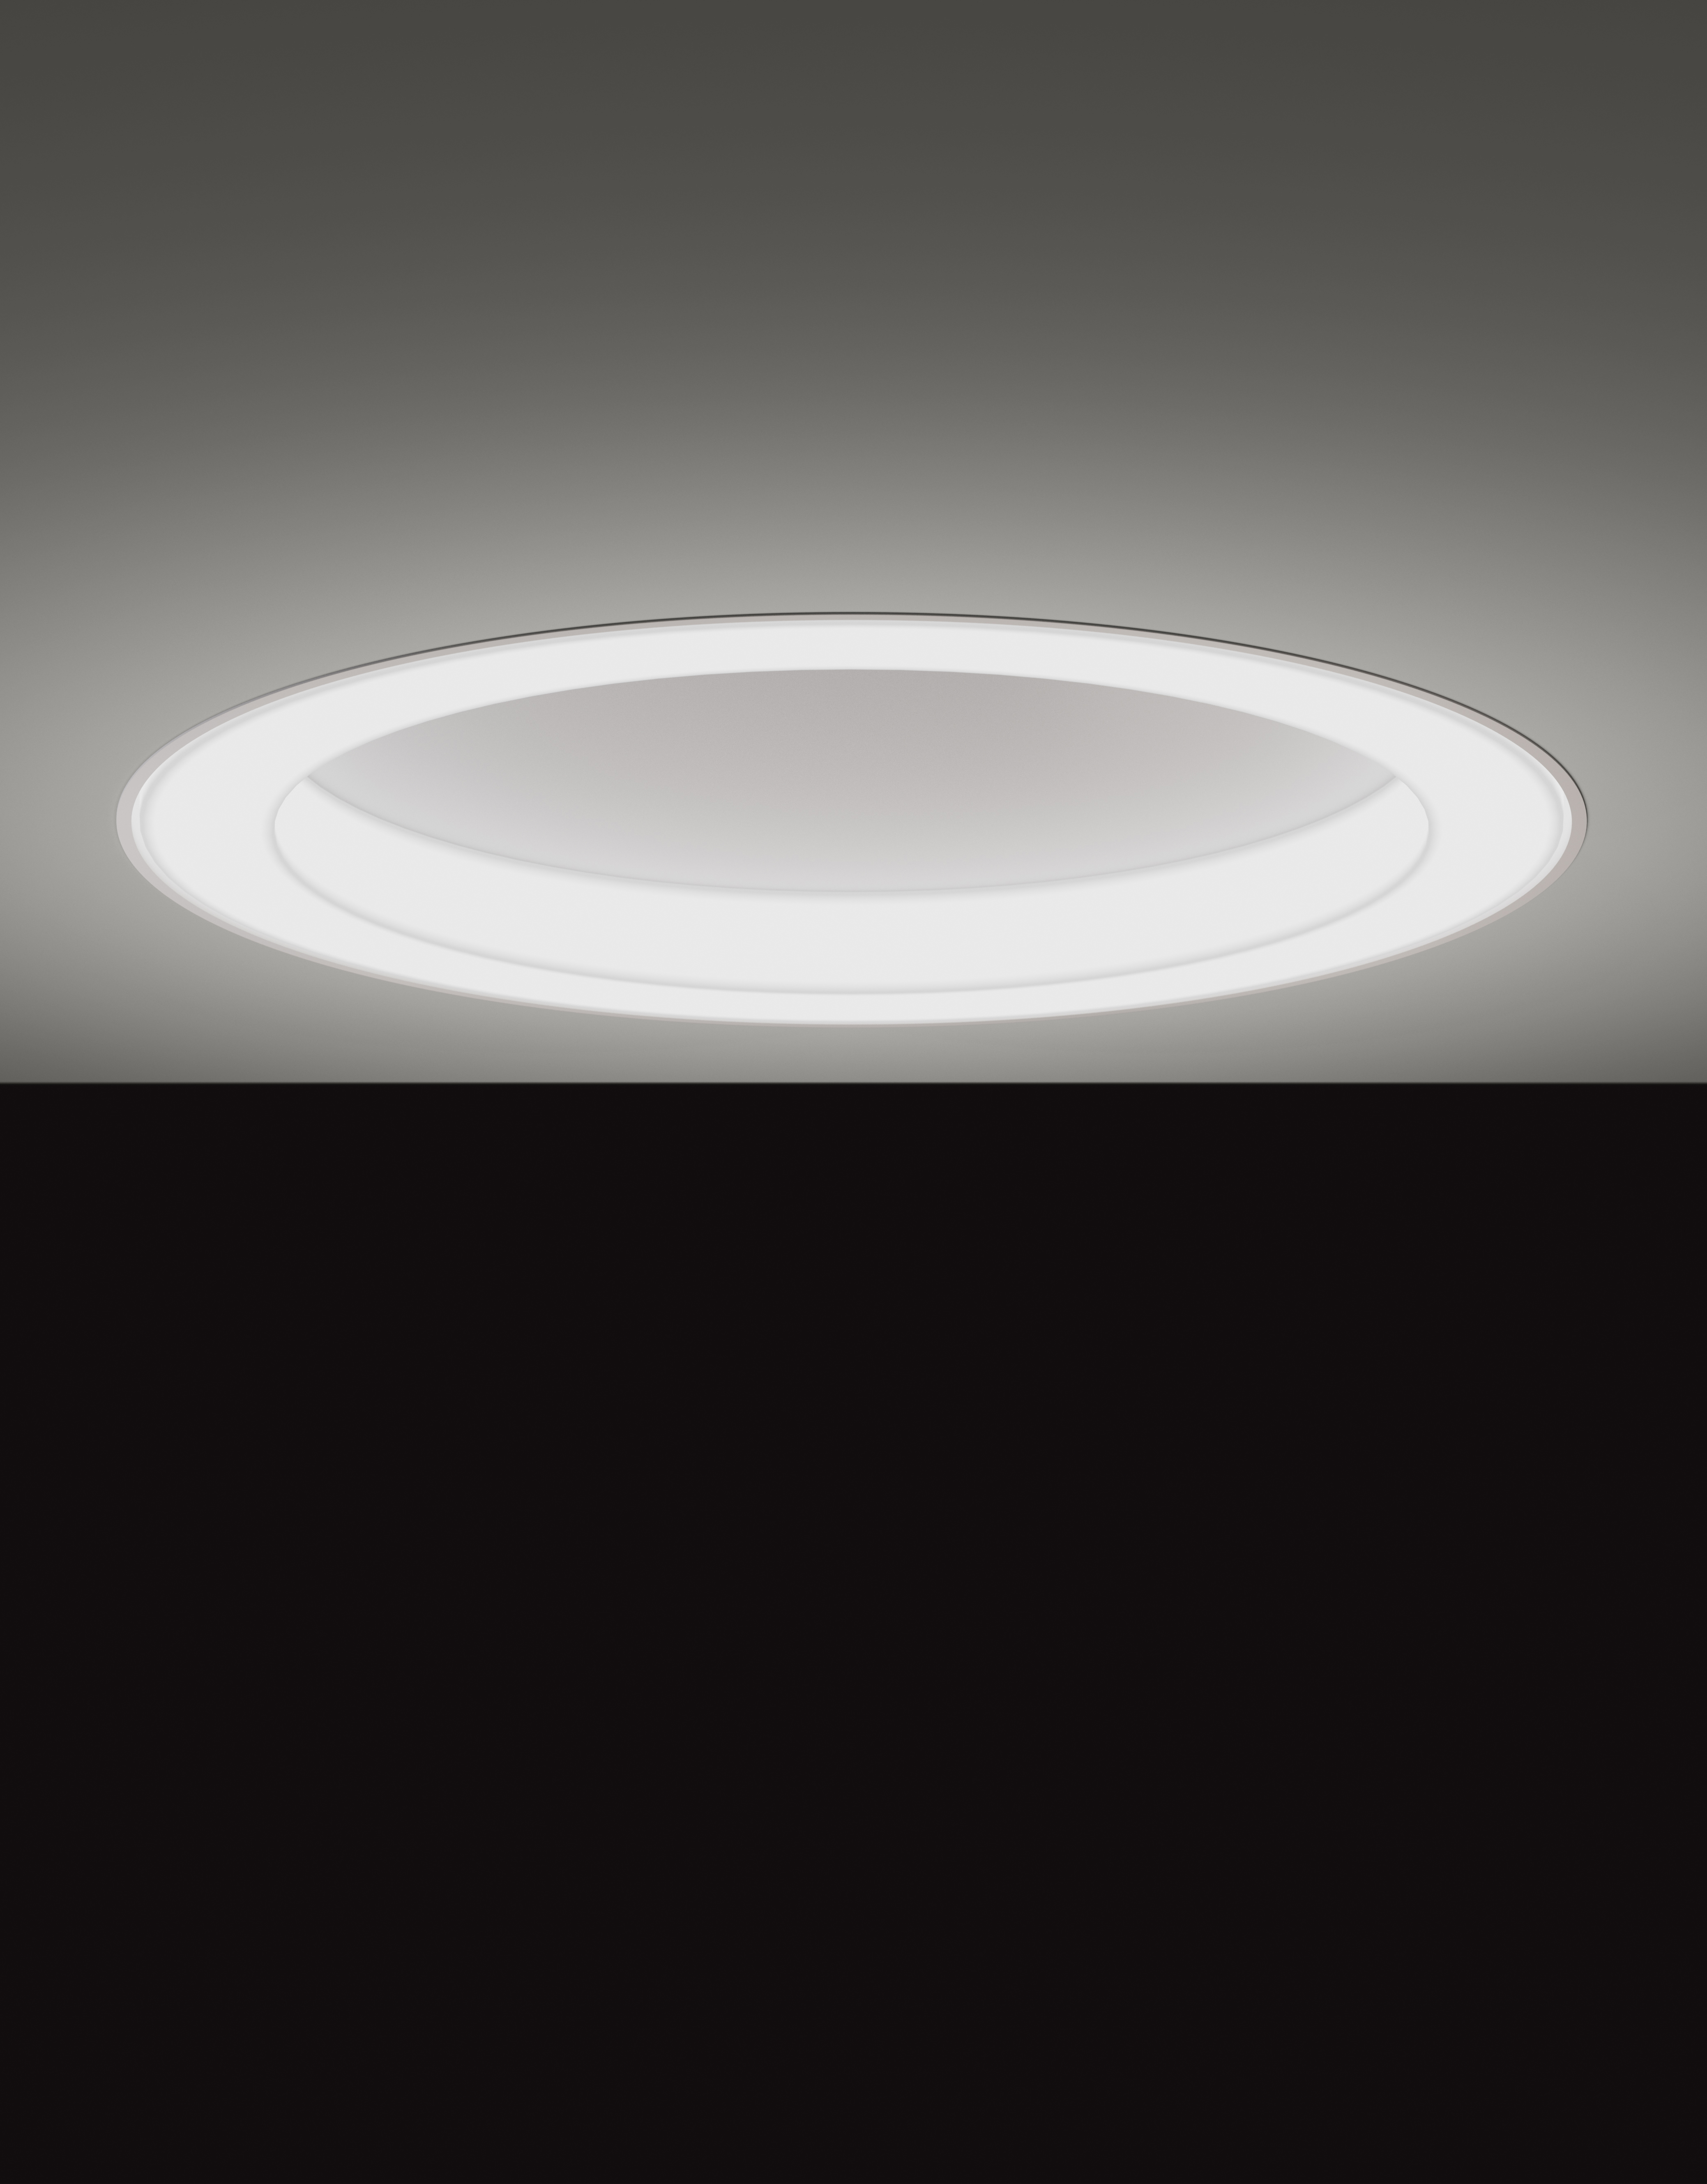 Glowring Recessed Ceiling Ocl